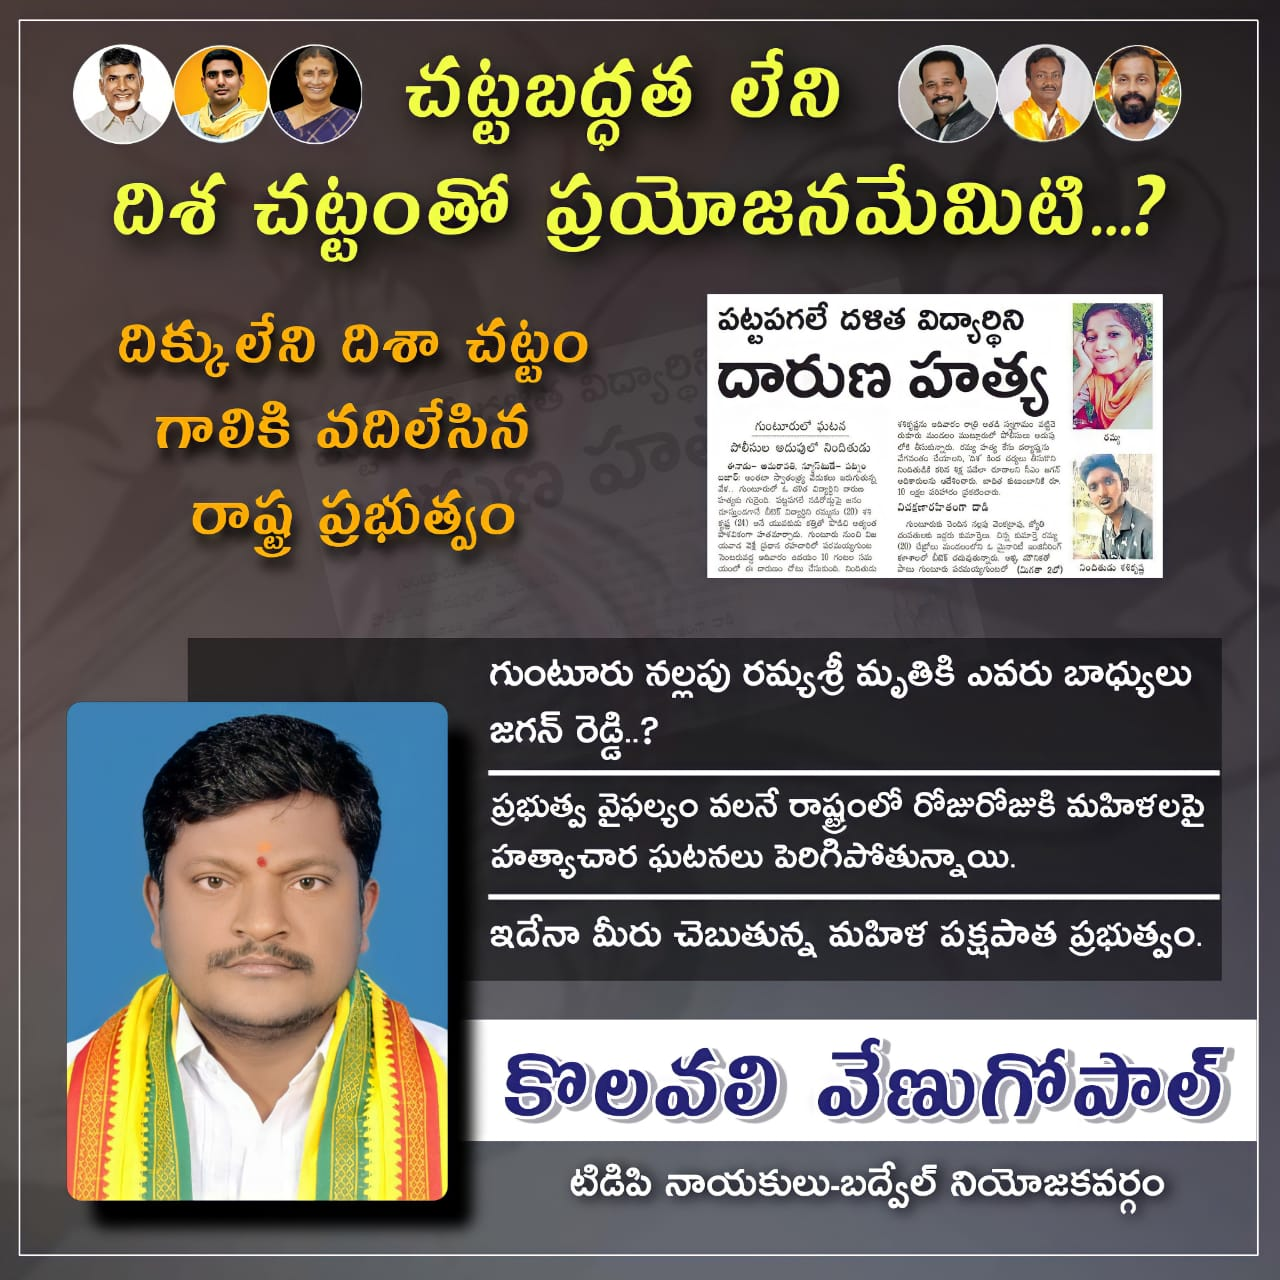 Kolavali Venugopal | Youth Wing Official Spokesperson | theLeadersPage